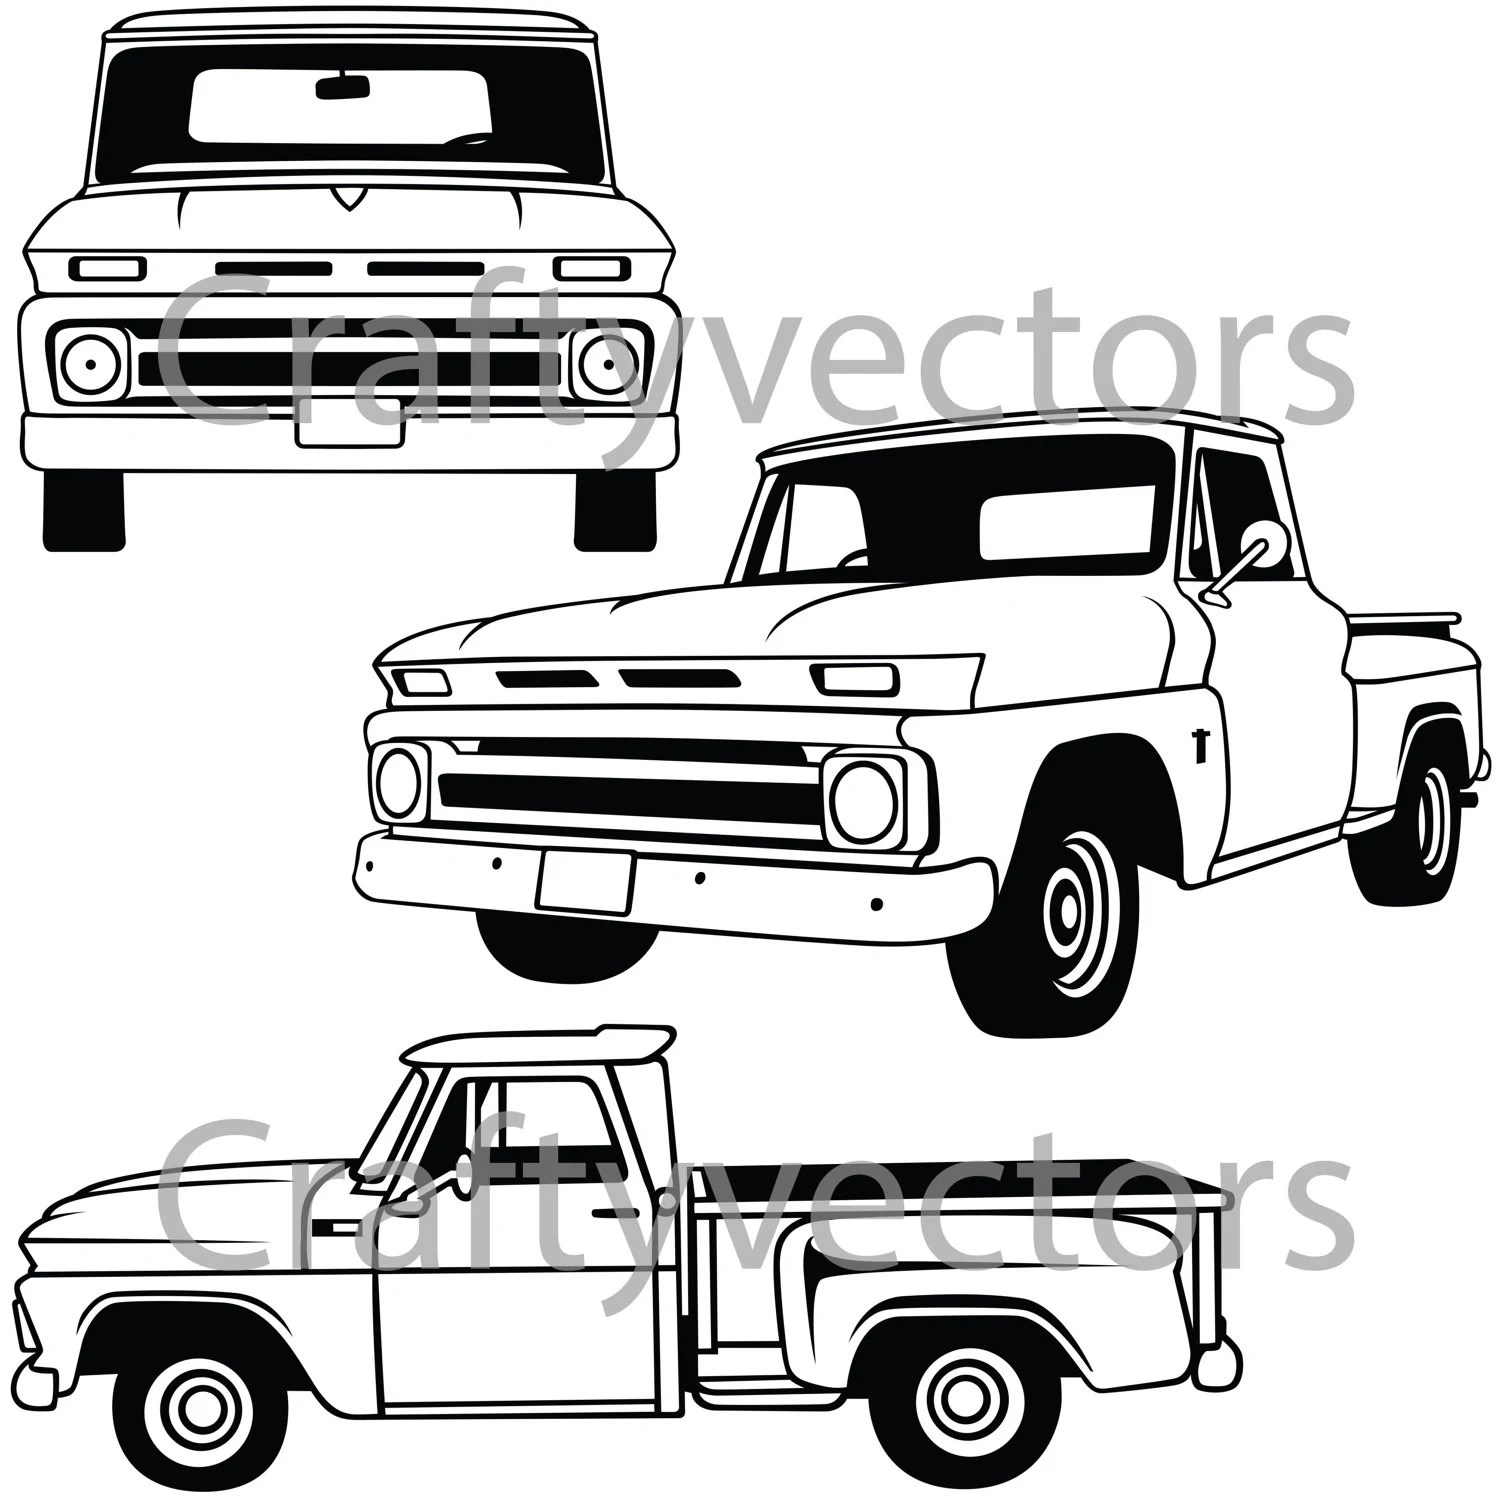 1966 chevrolet c10 pick up ledningsdiagram